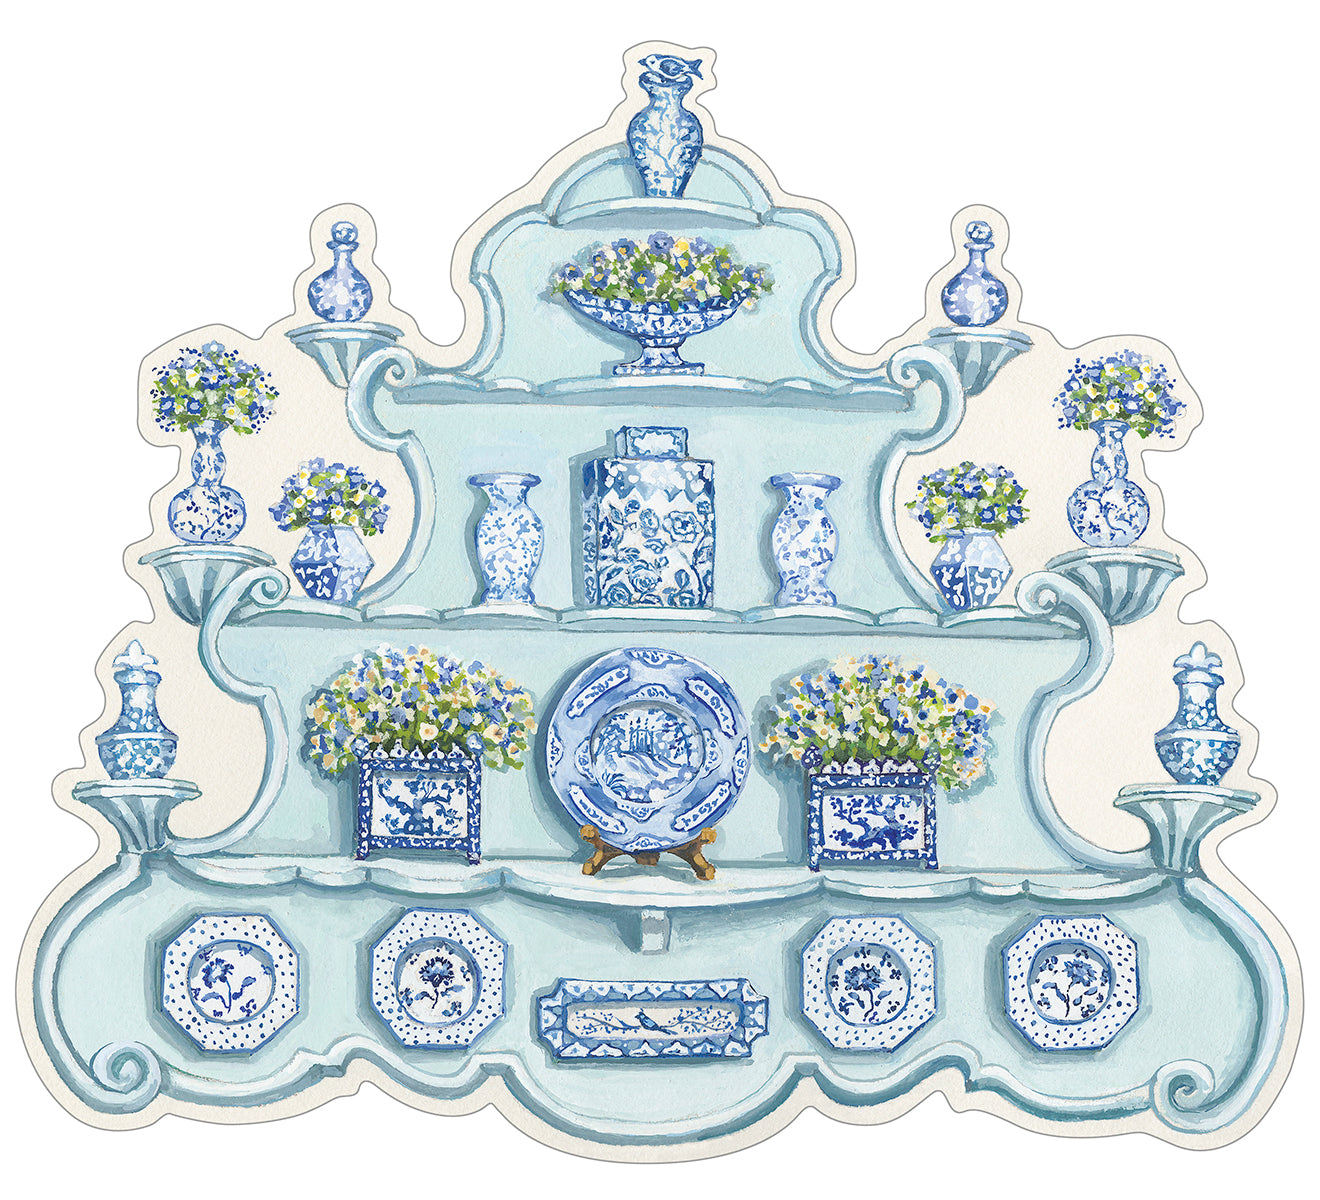 China Cabinet Die-Cut Placemat